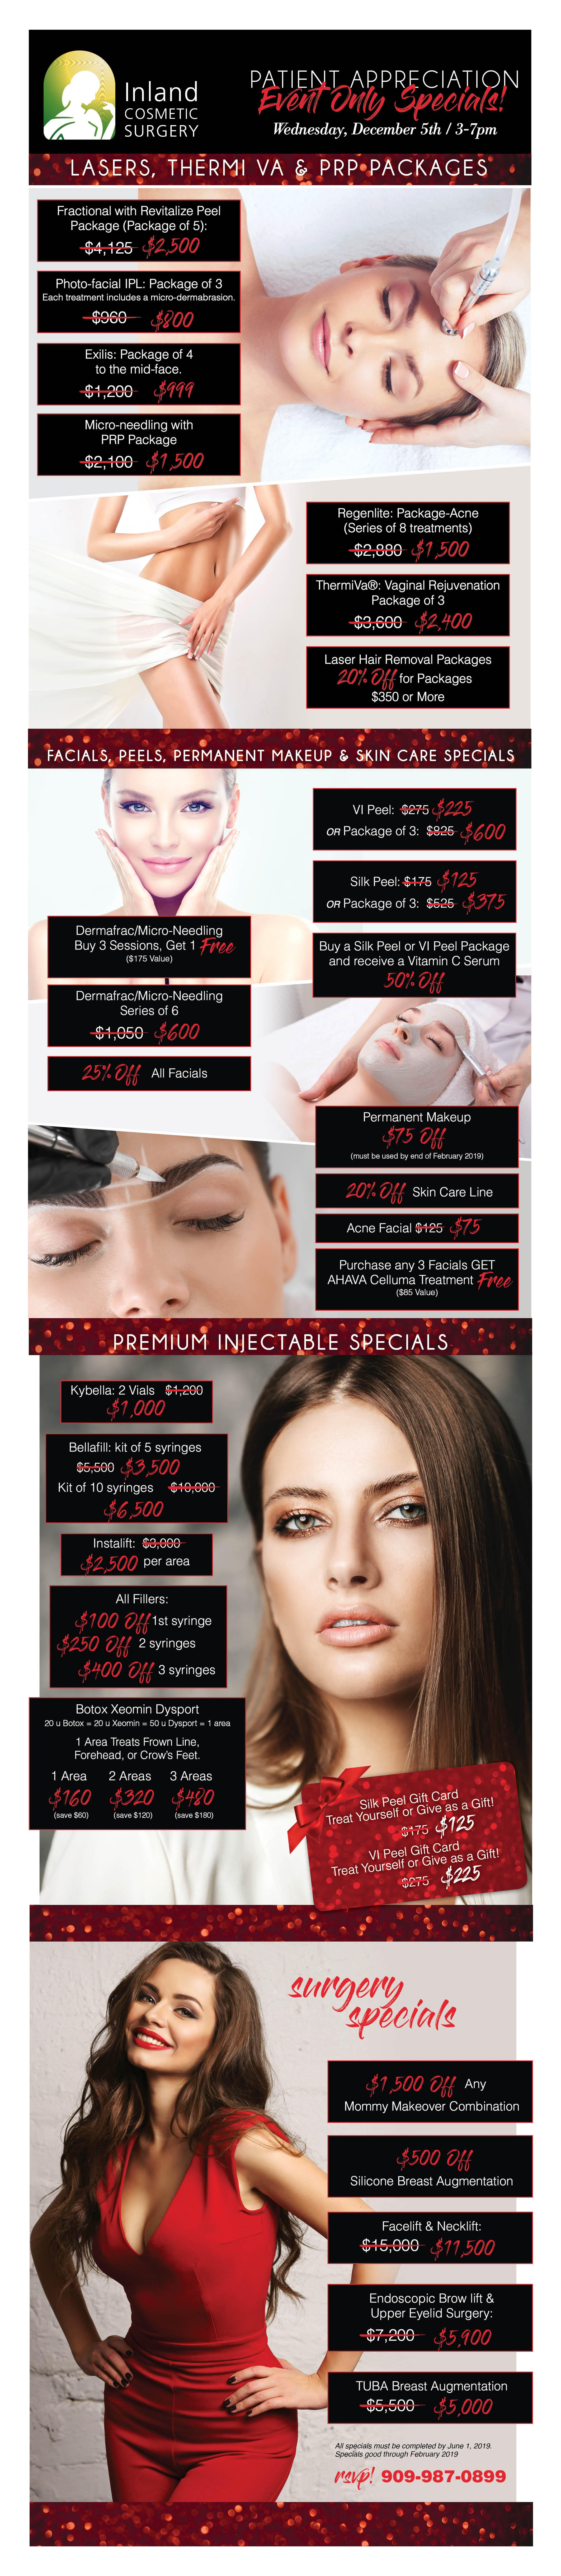 Cosmetic-Surgery-Injectable-Specials